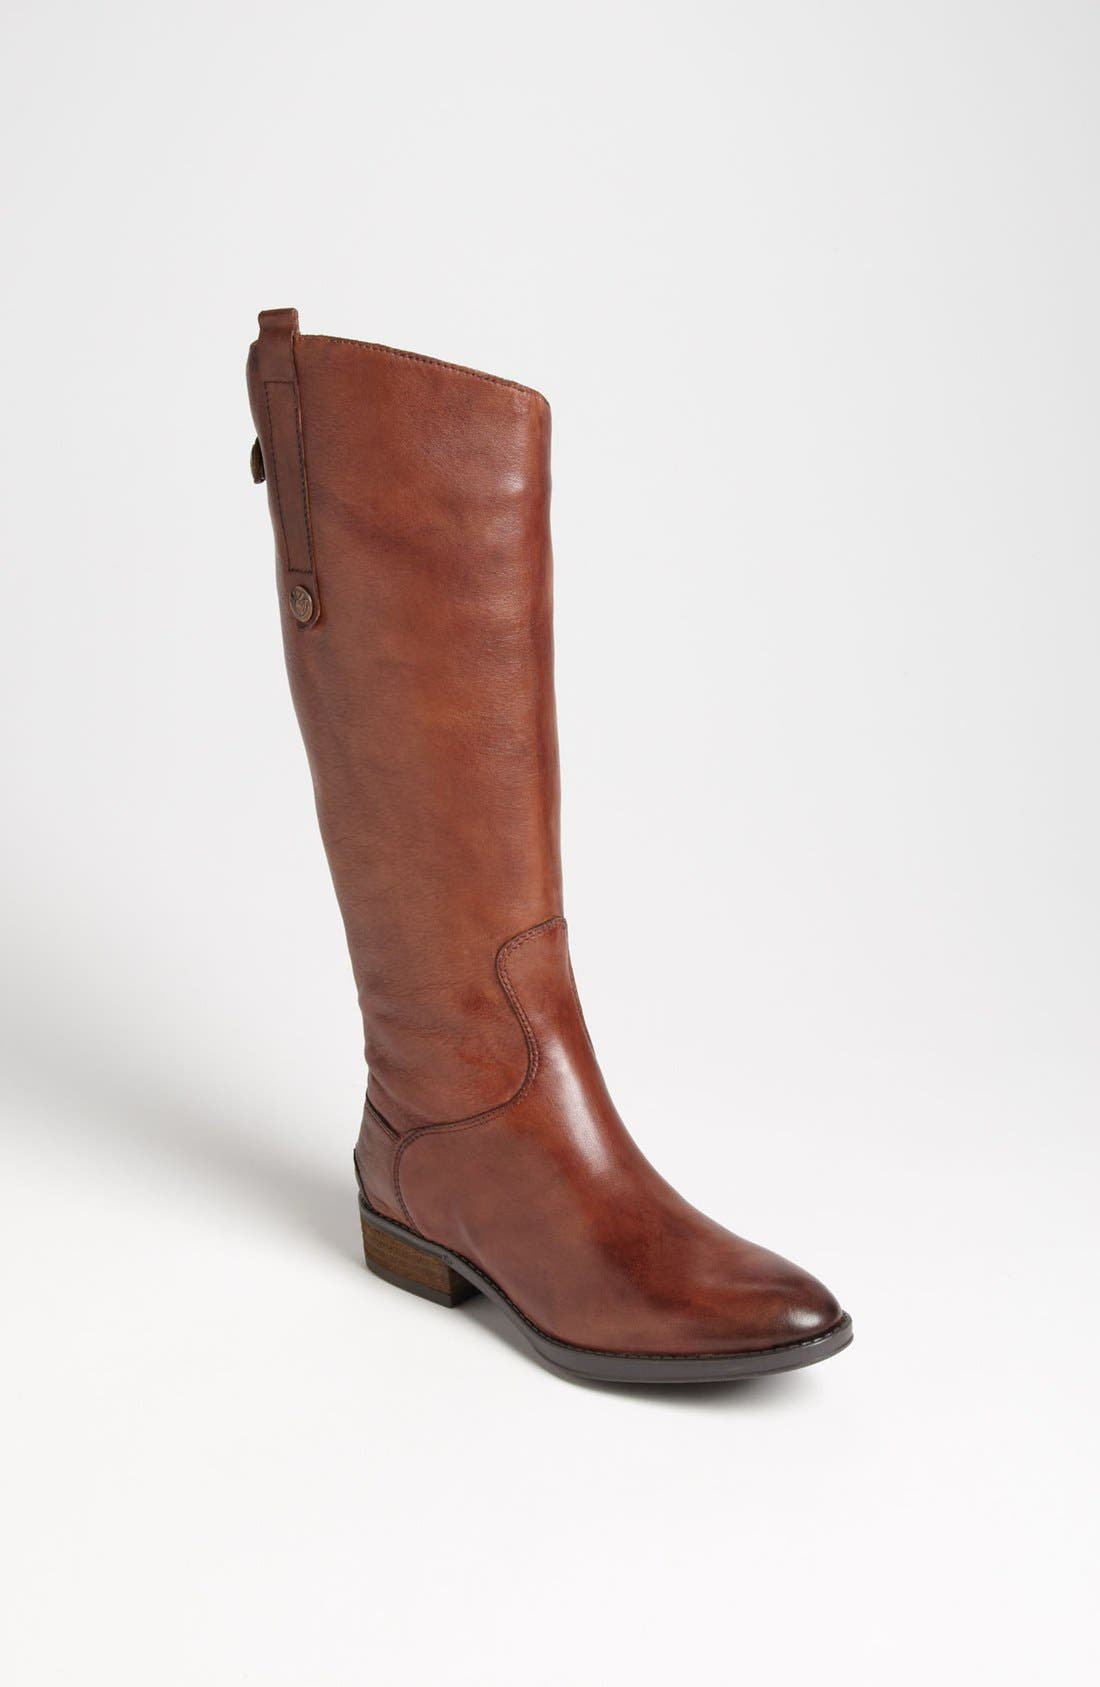 Women's Flat Heel Boots, Boots for Women | Nordstrom